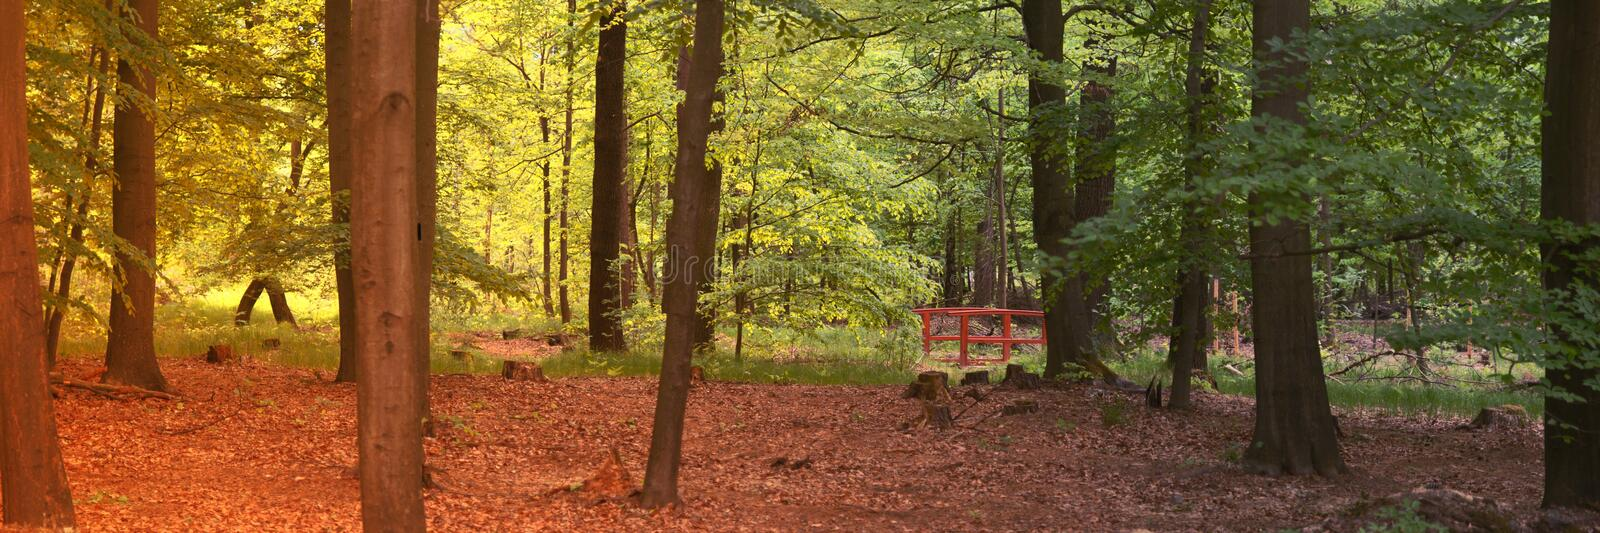 Two seasons in the forest, summer and autumn. Panoramic landscape shot stock photo